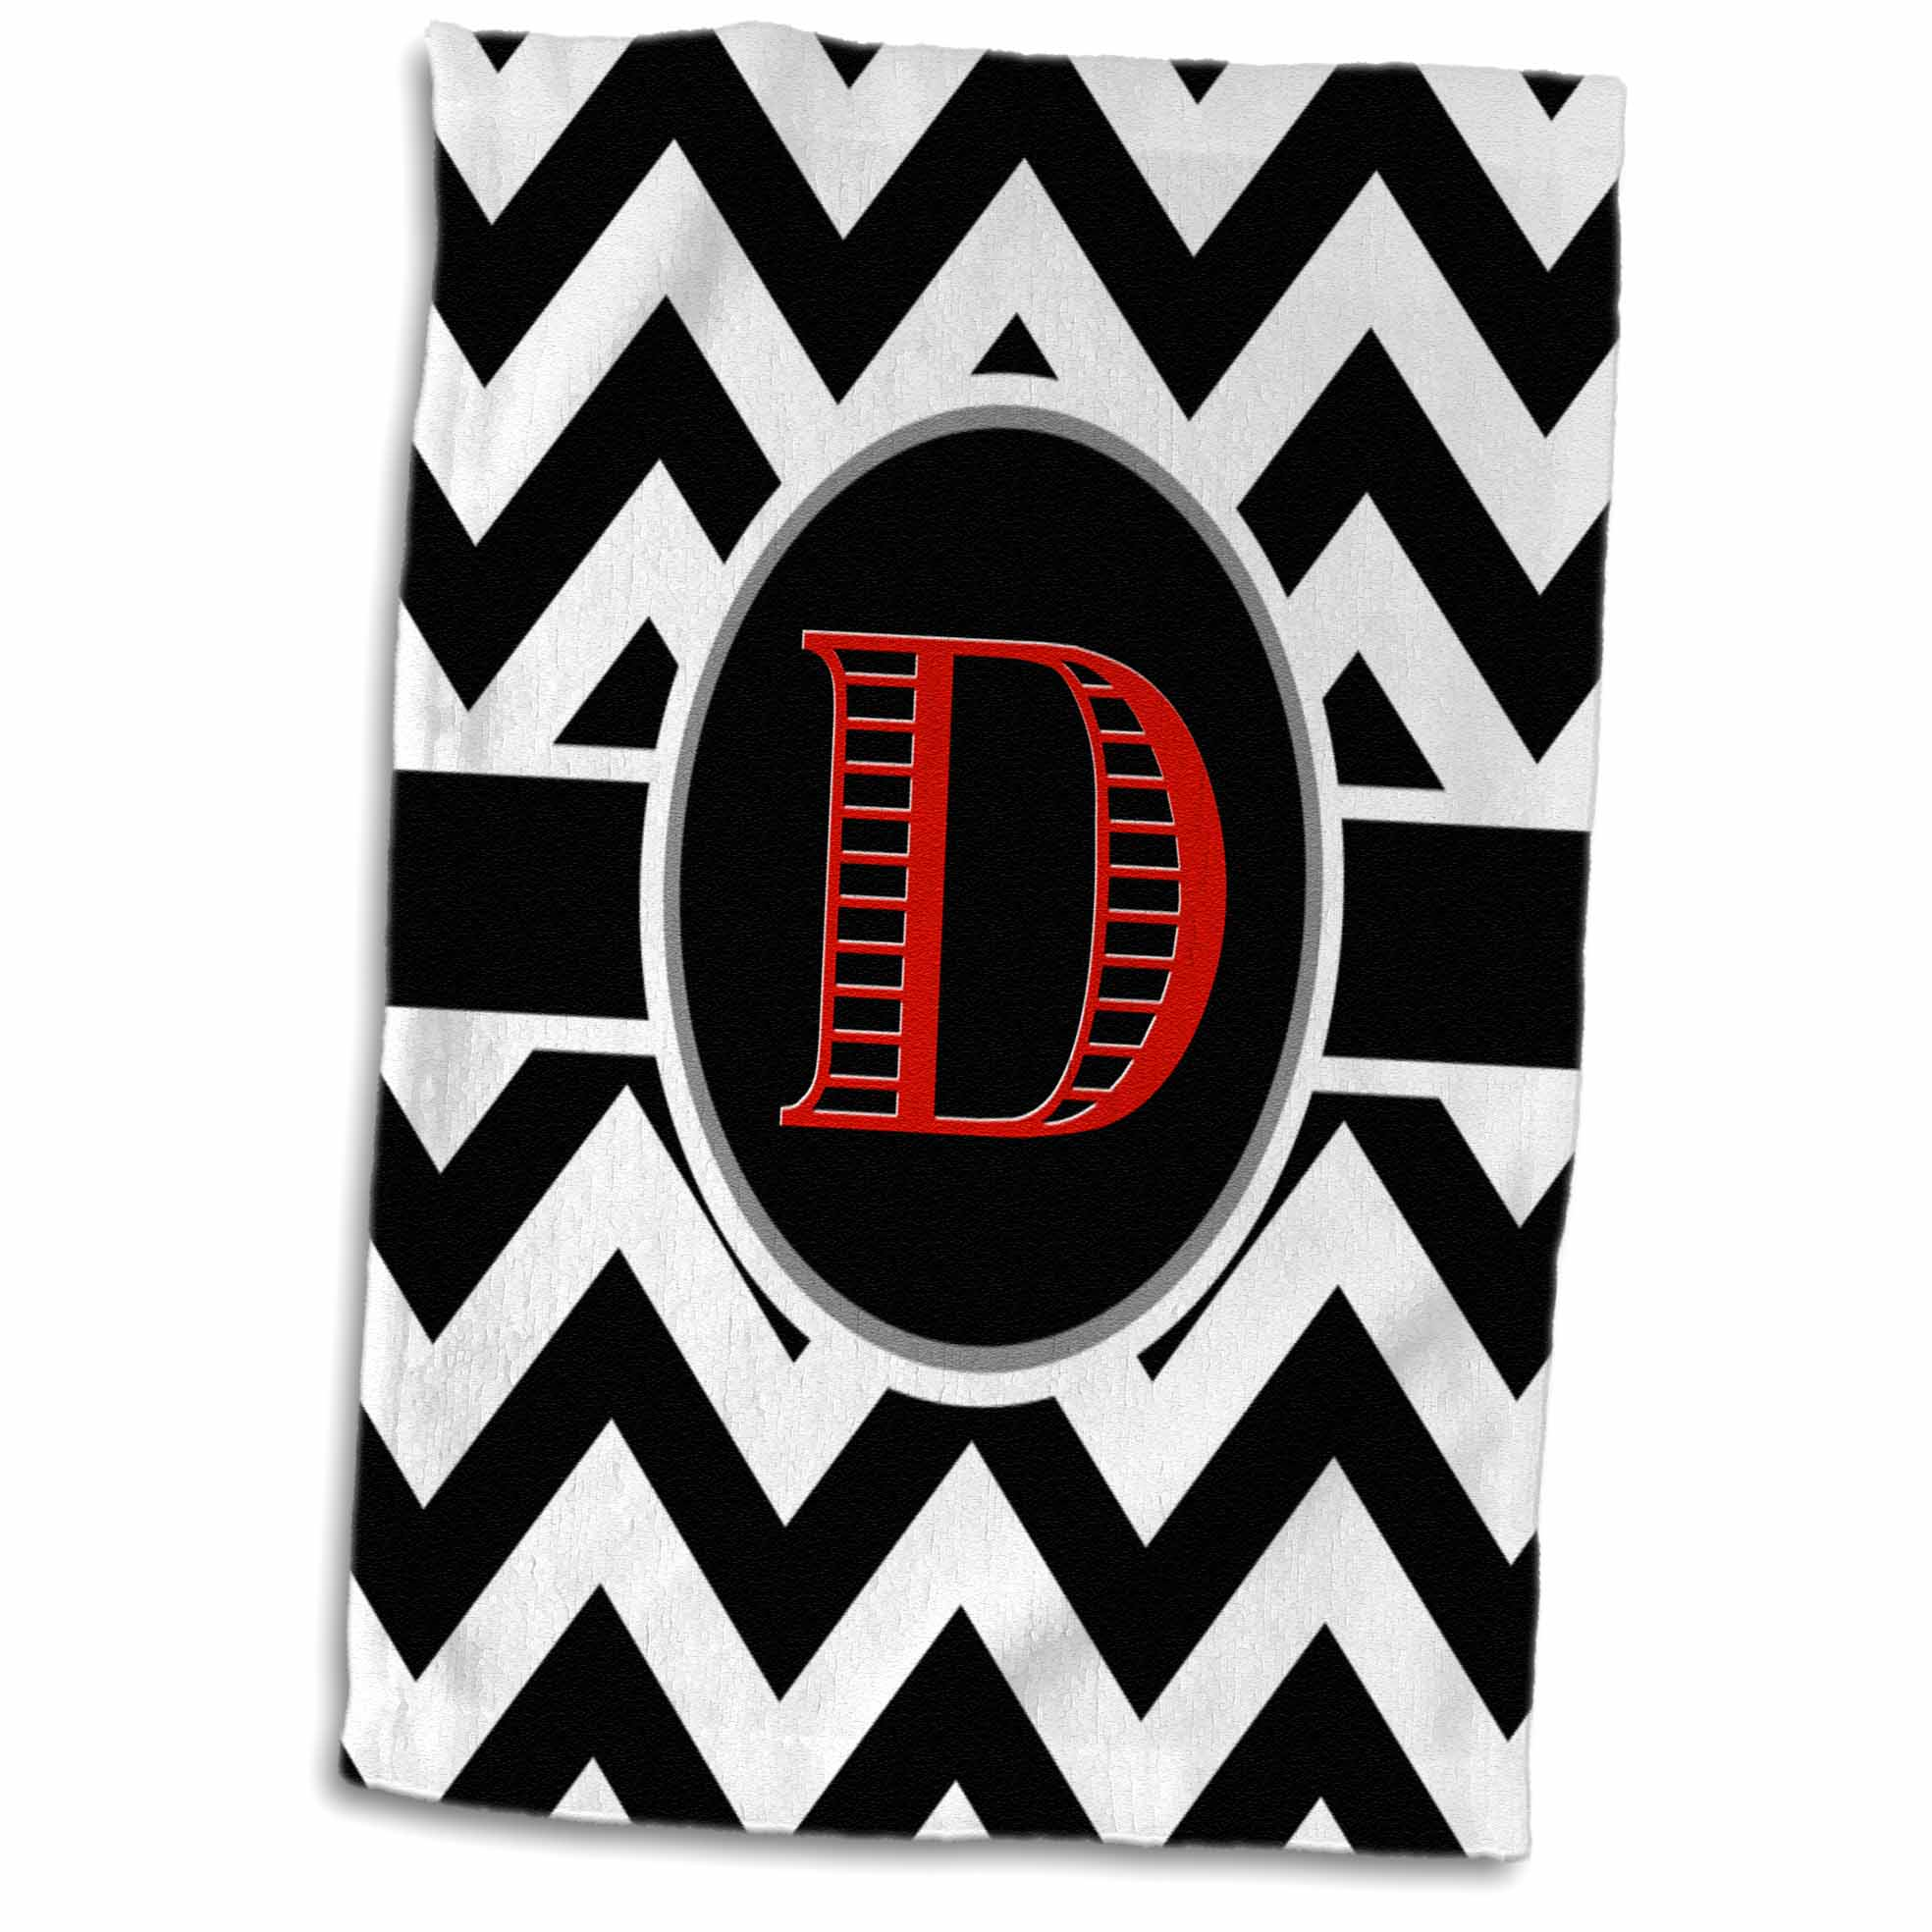 3dRose Black and white chevron monogram red initial D - Towel, 15 by 22-inch